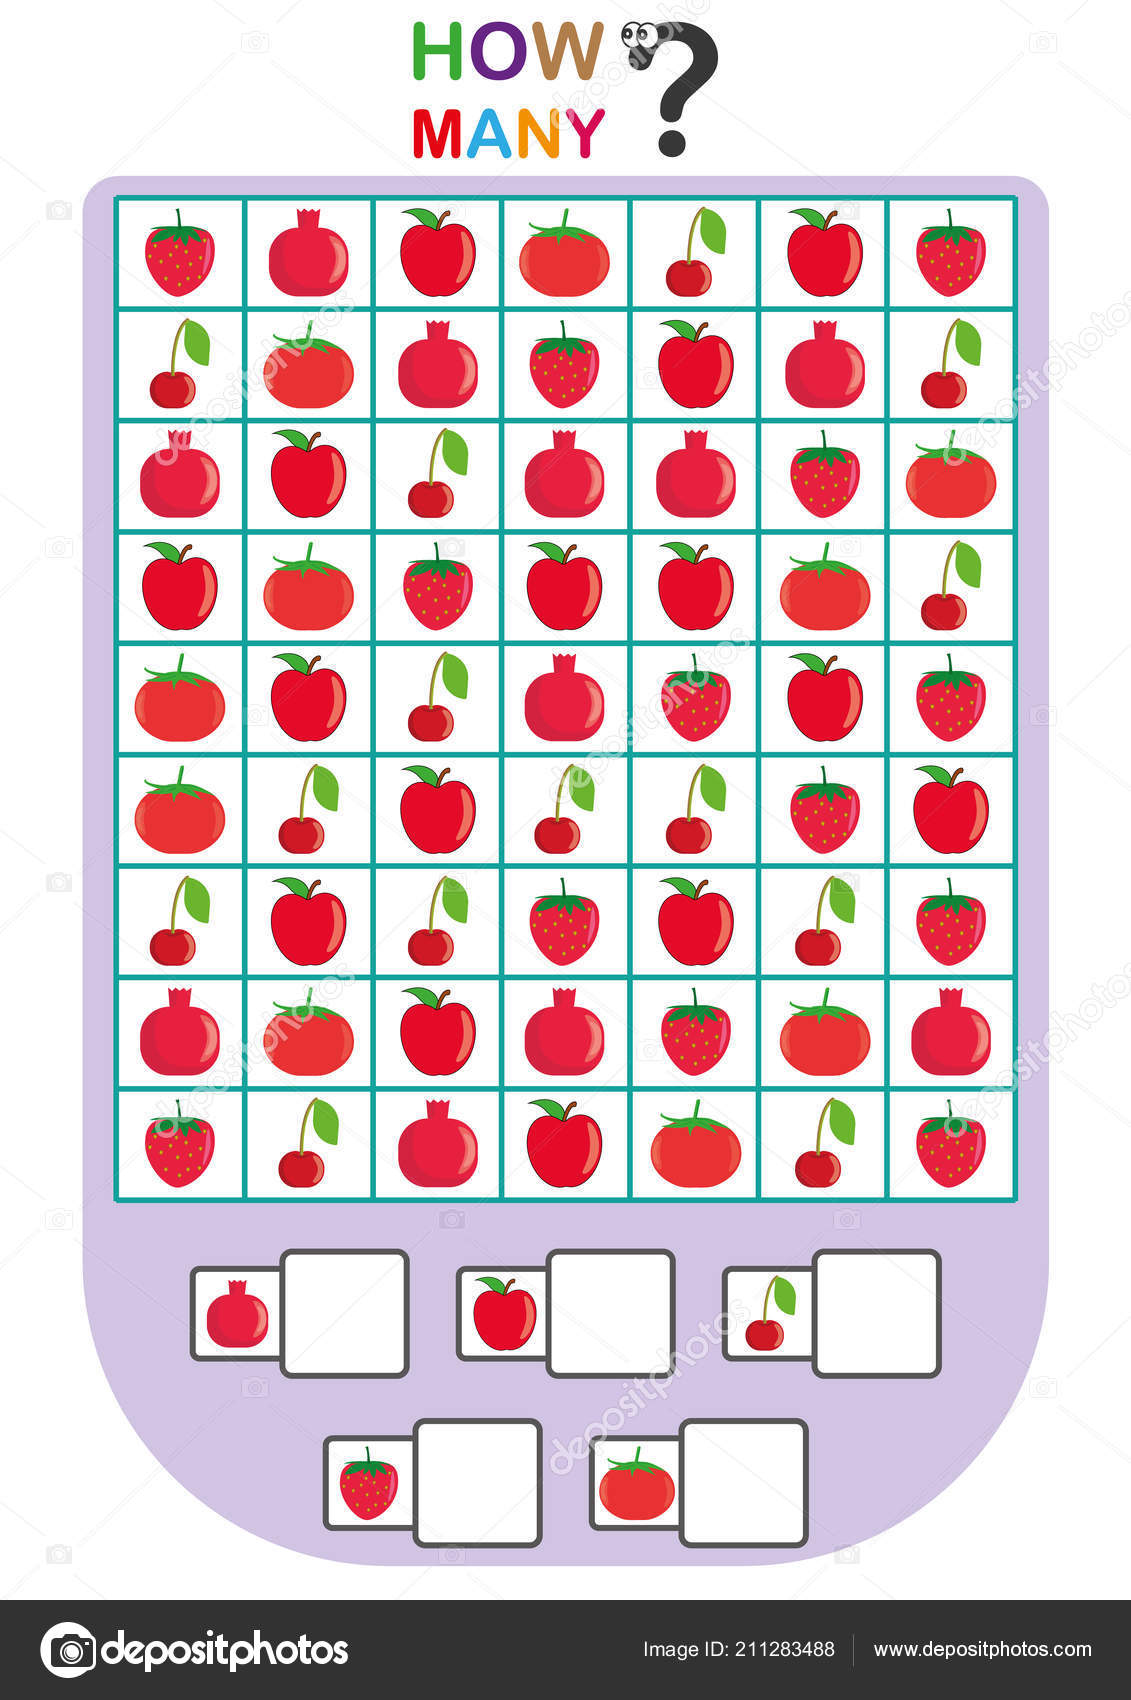 Worksheet For Kids Count The Number Of Objects Learn The